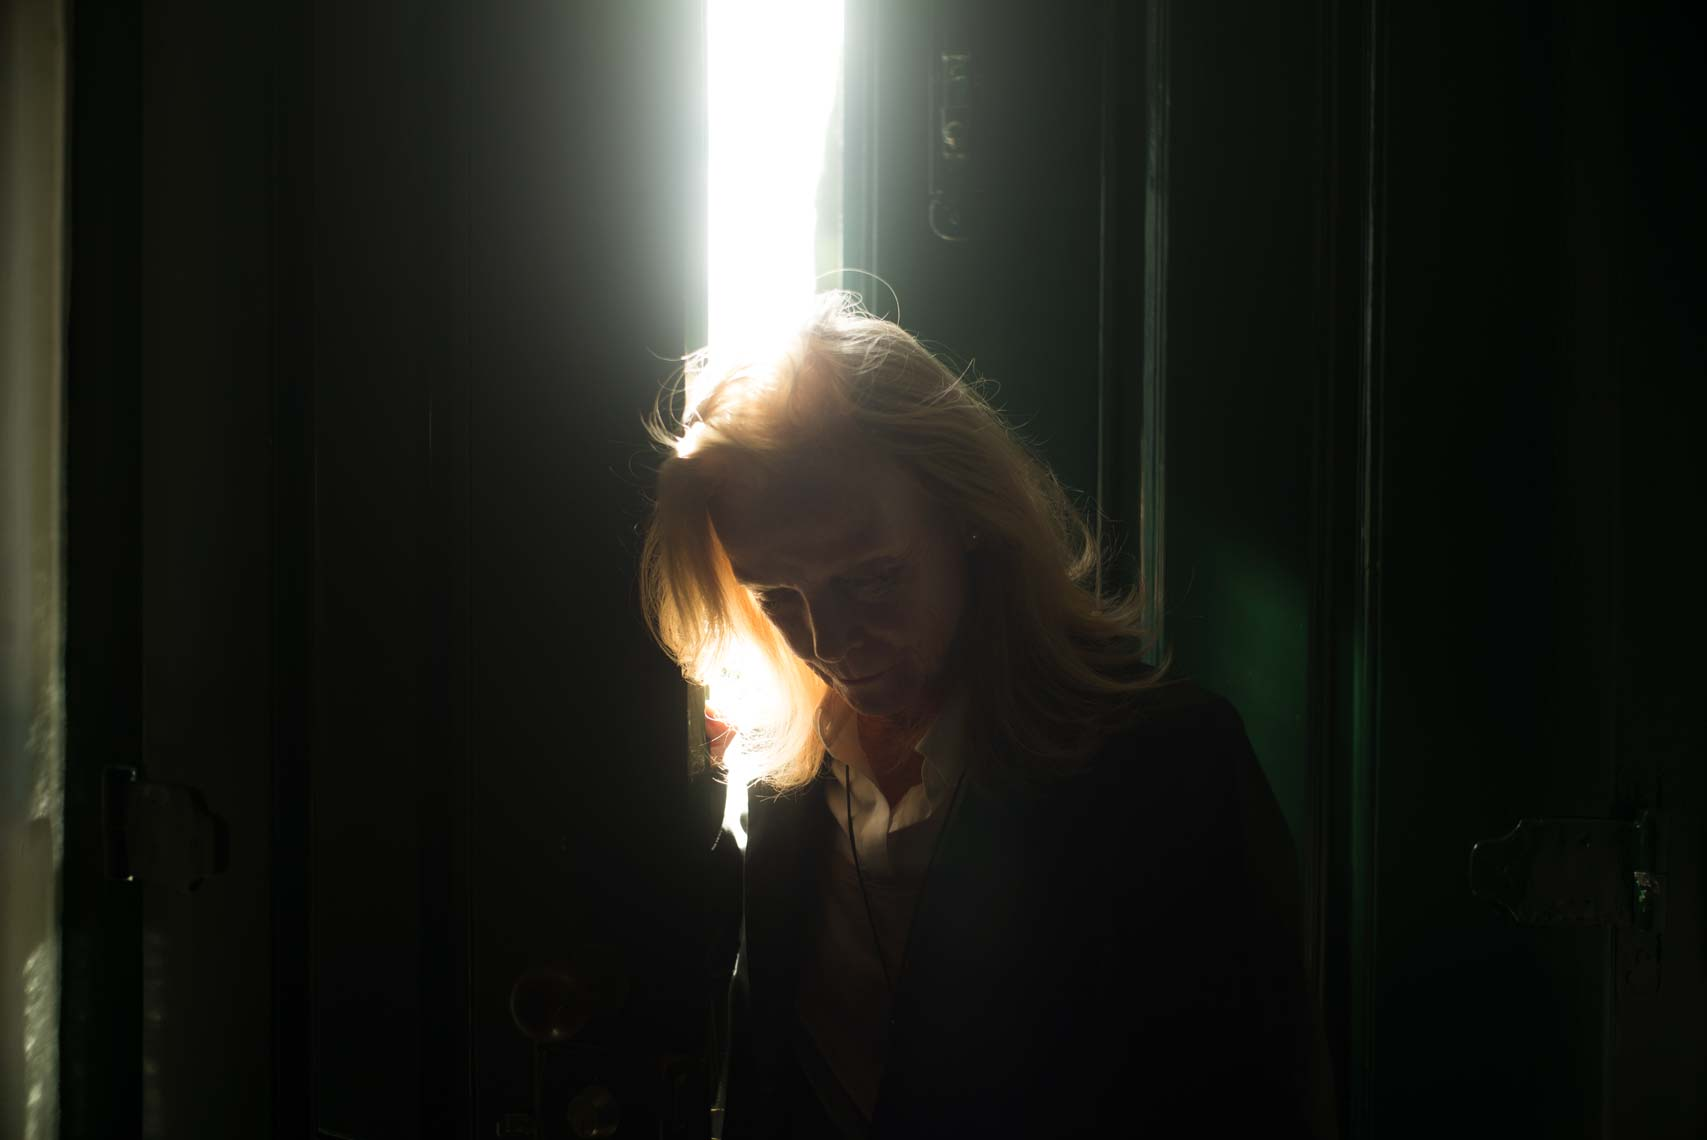 Anita-in-doorweay-with-light